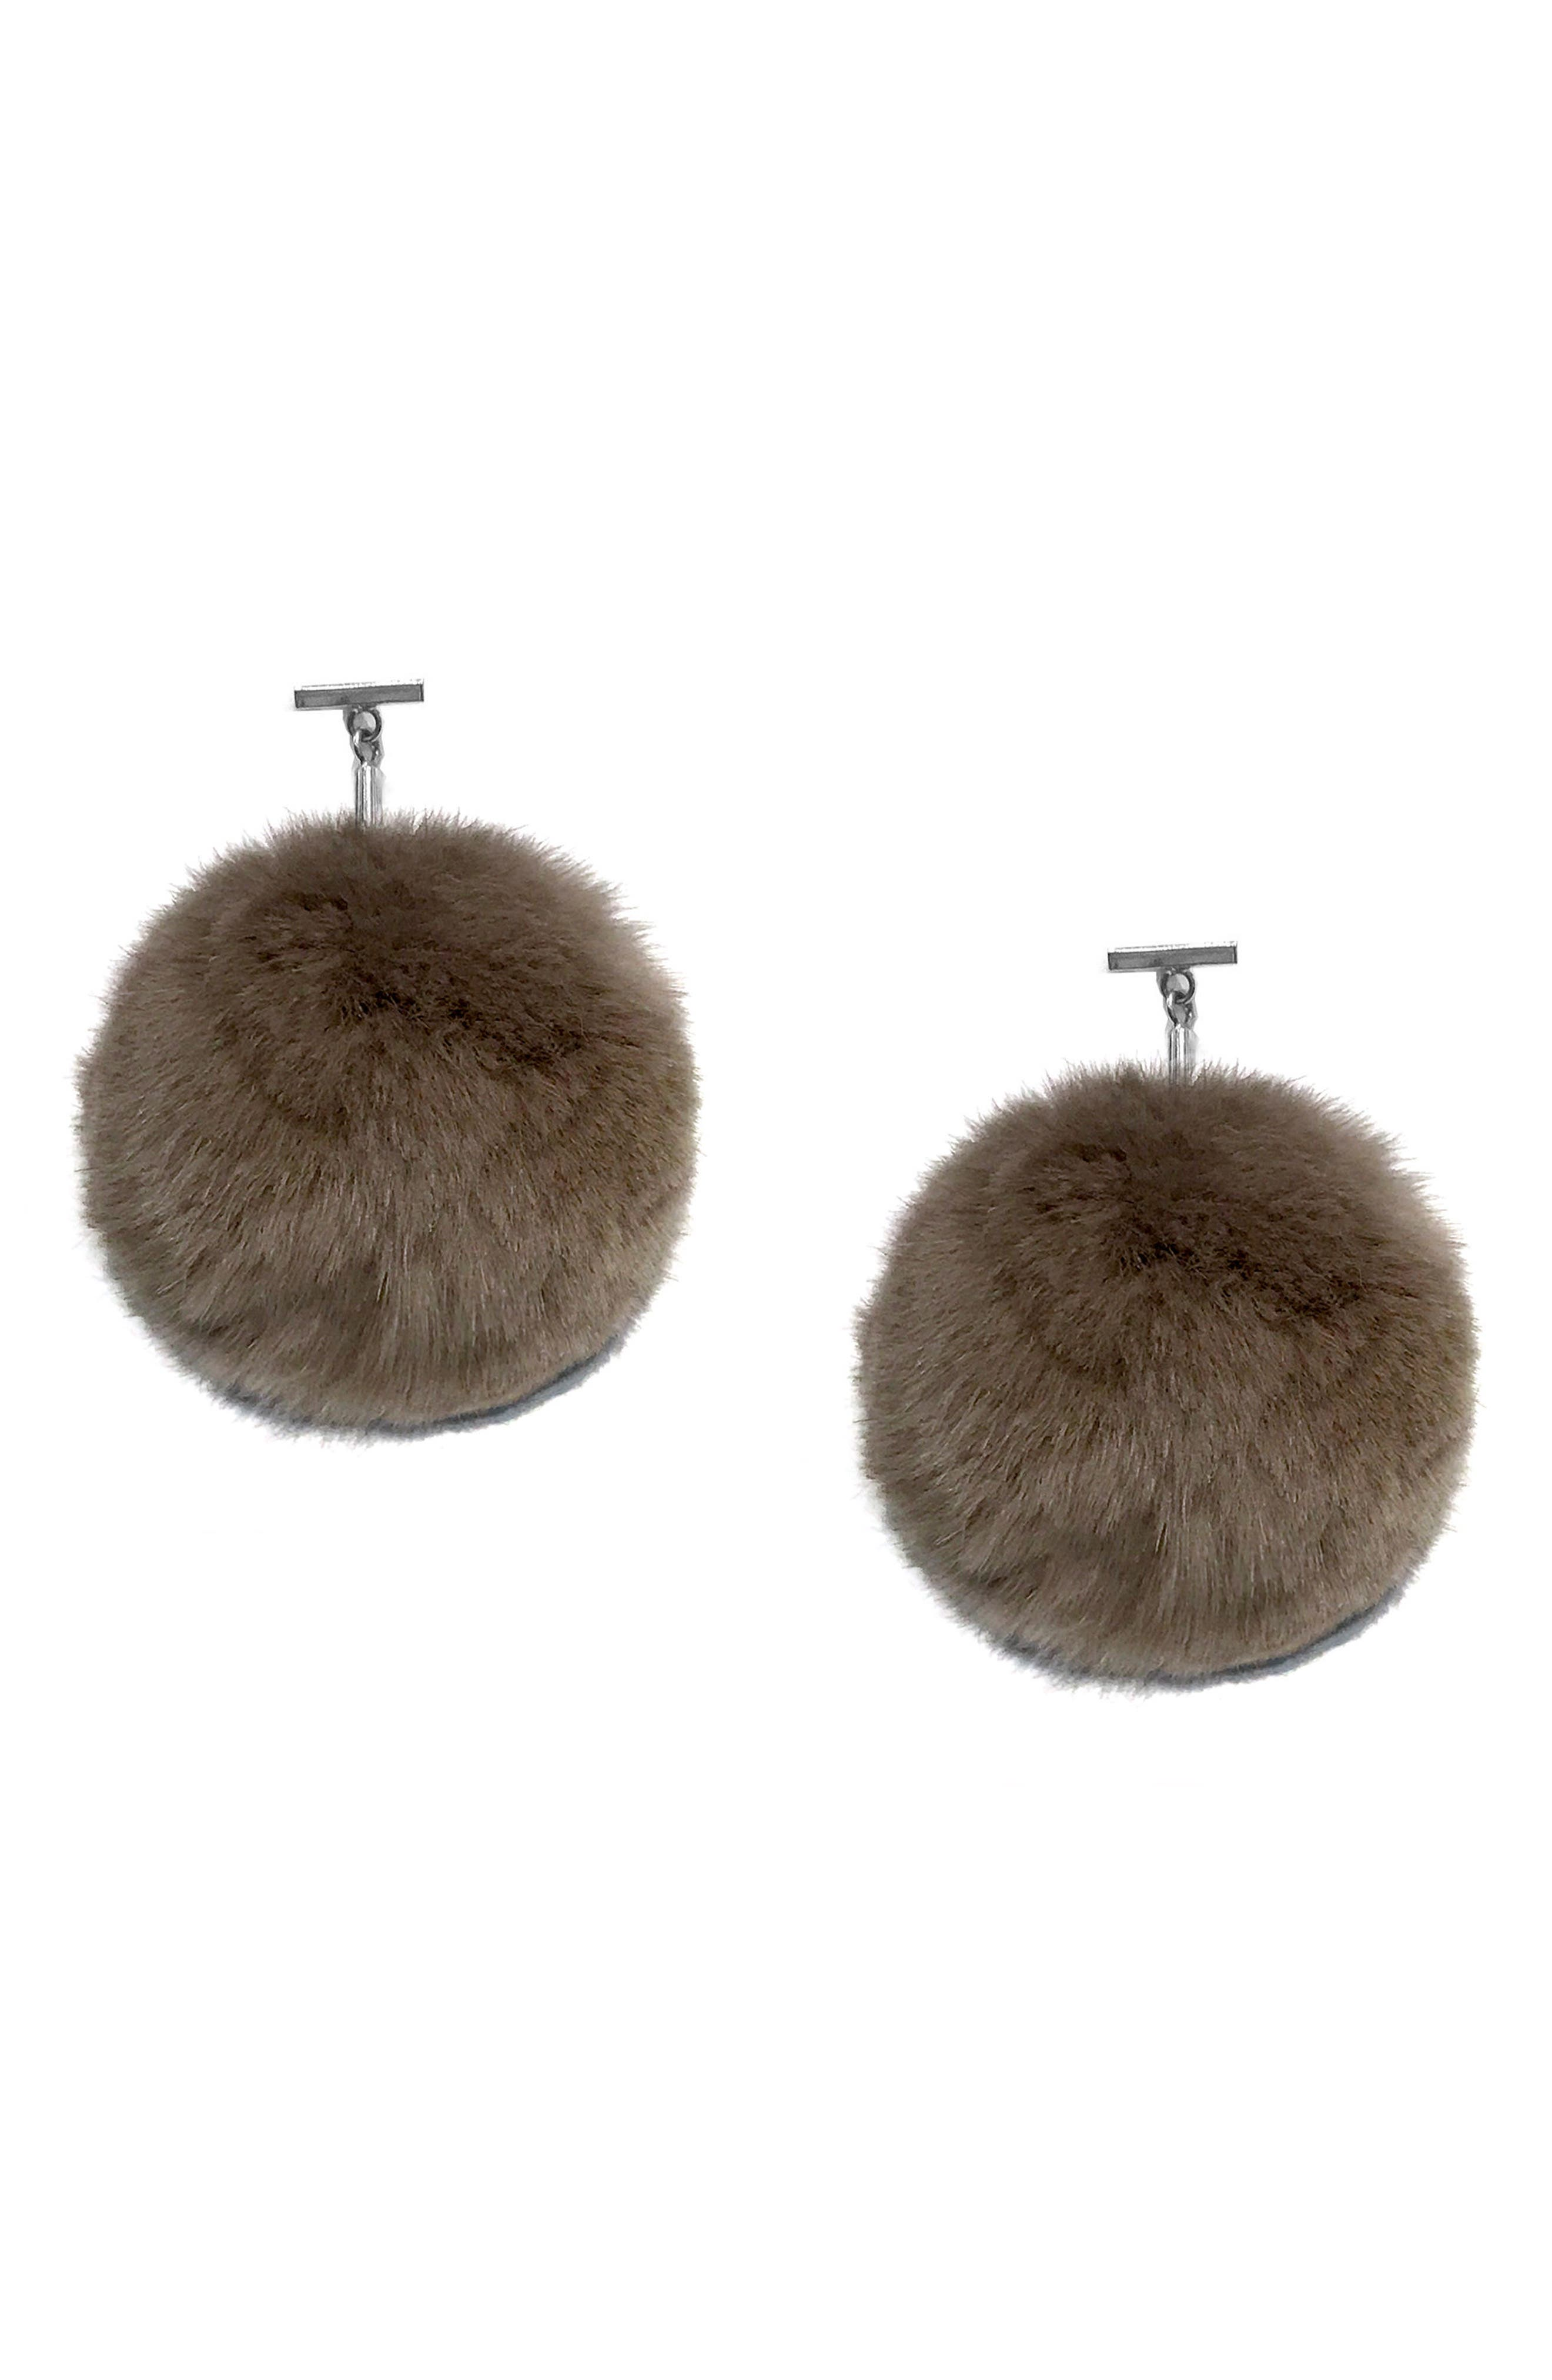 Pompom Drop Earrings,                         Main,                         color, Silver/ Taupe